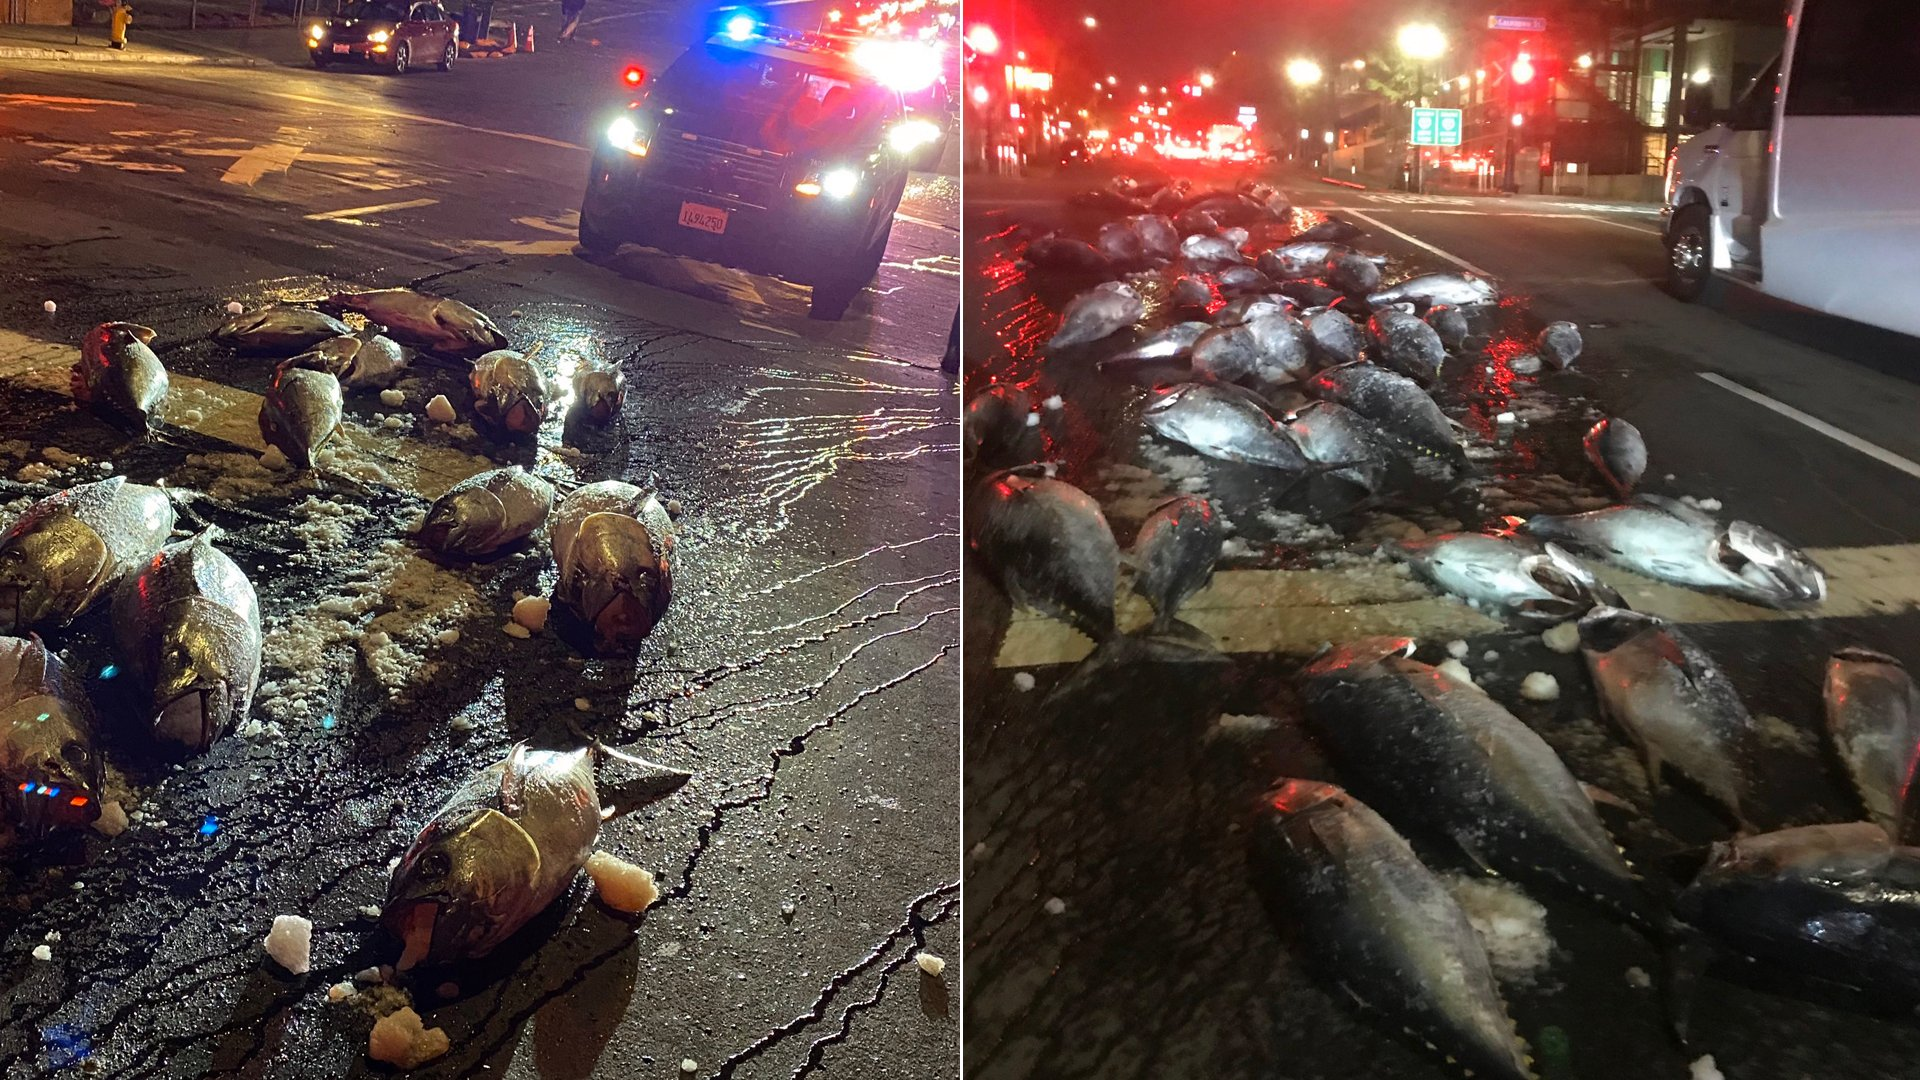 A truck driver spilled dozens of frozen tuna in downtown San Diego on Feb. 4, 2020. (Credit: San Diego Police Department)